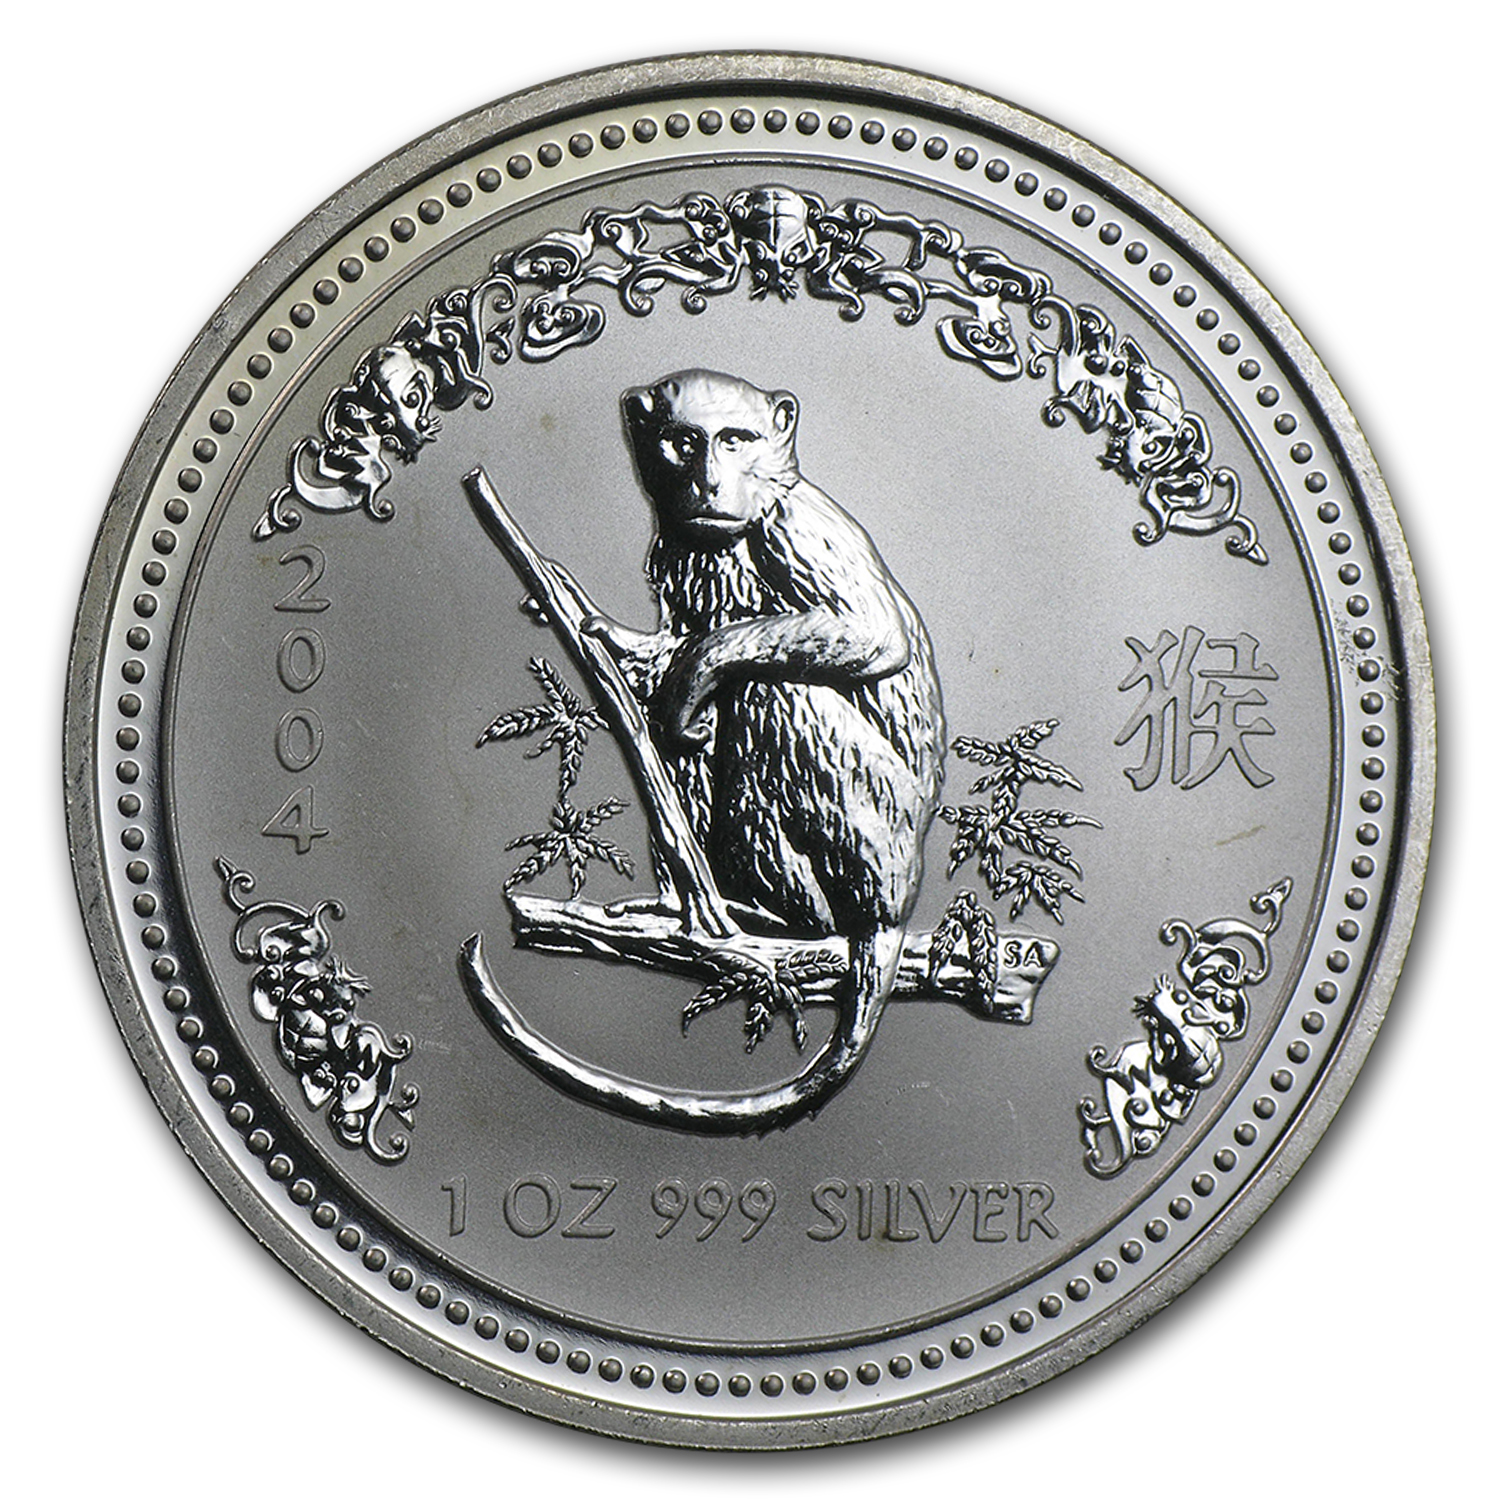 2004 1 oz Silver Lunar Year of the Monkey SI (Light Abrasions)